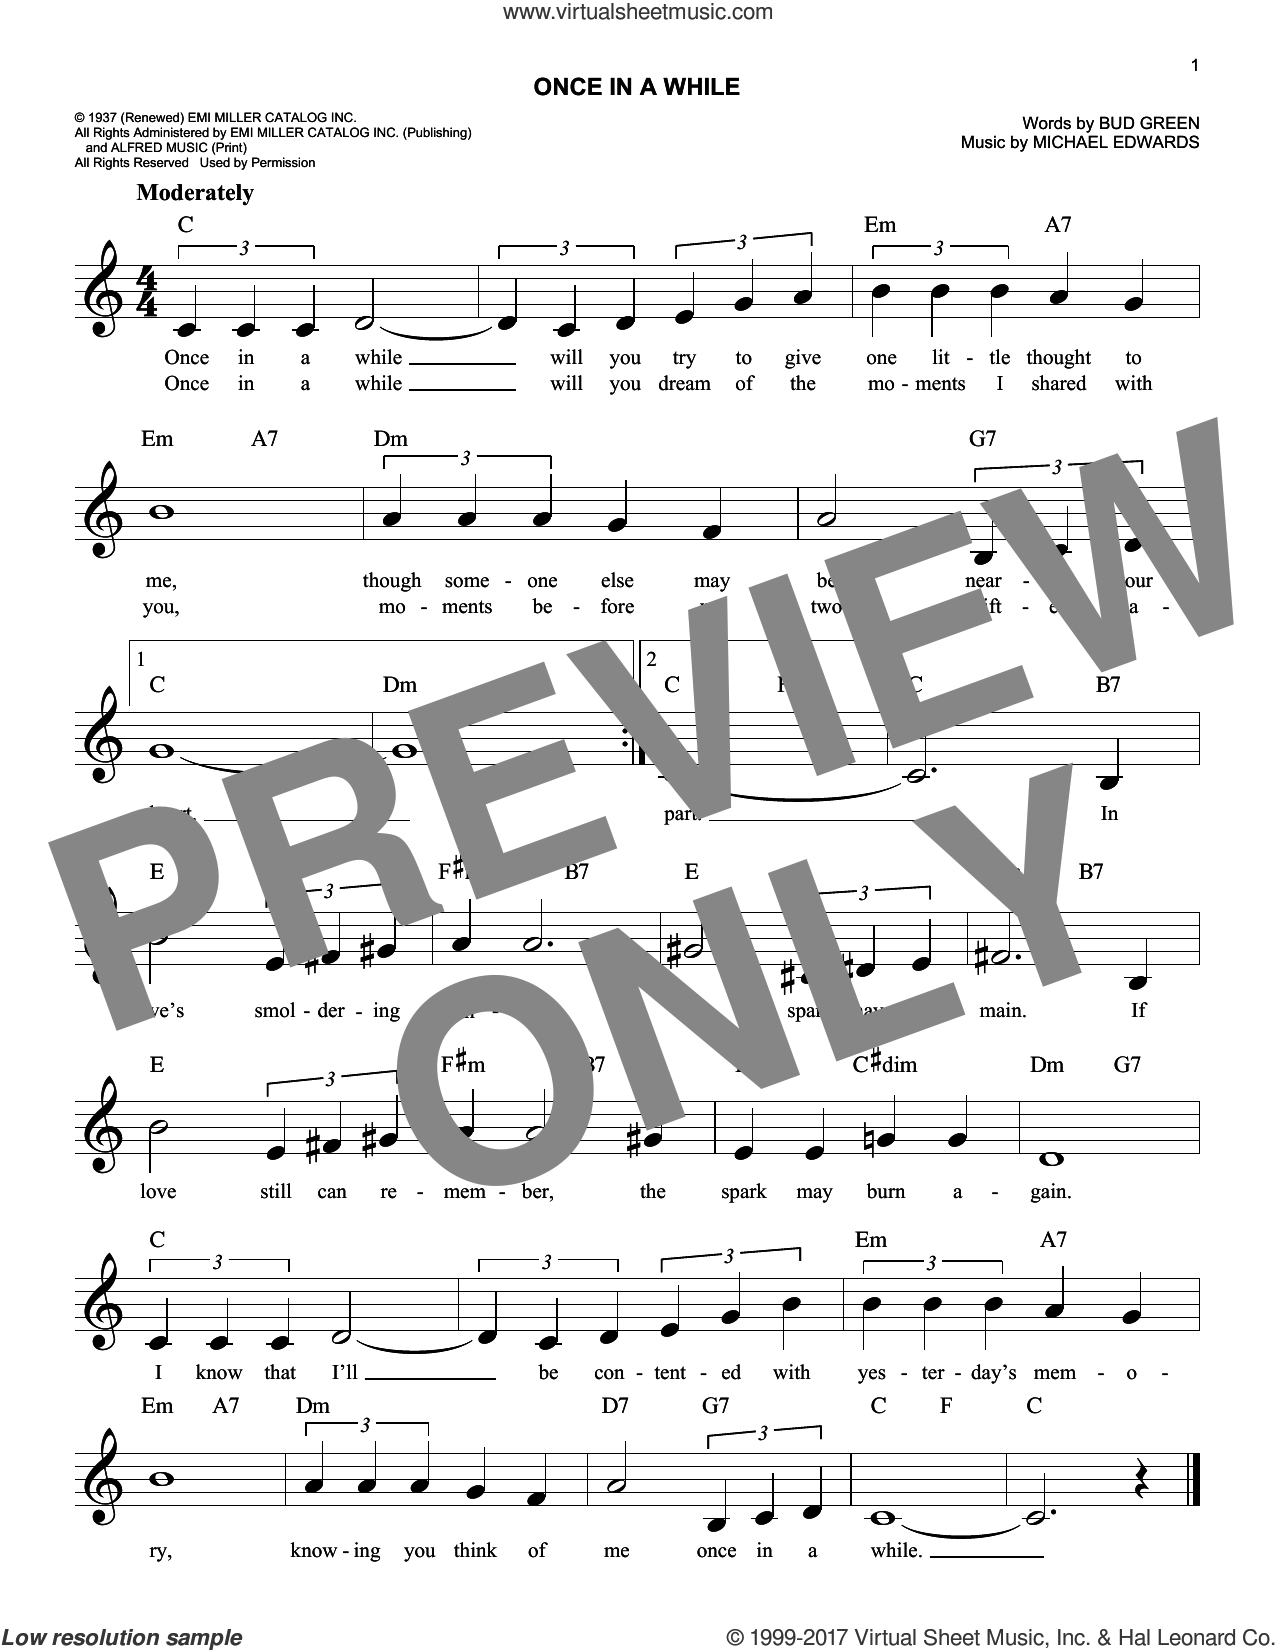 Once In A While sheet music for voice and other instruments (fake book) by Bud Green and Michael Edwards, intermediate skill level